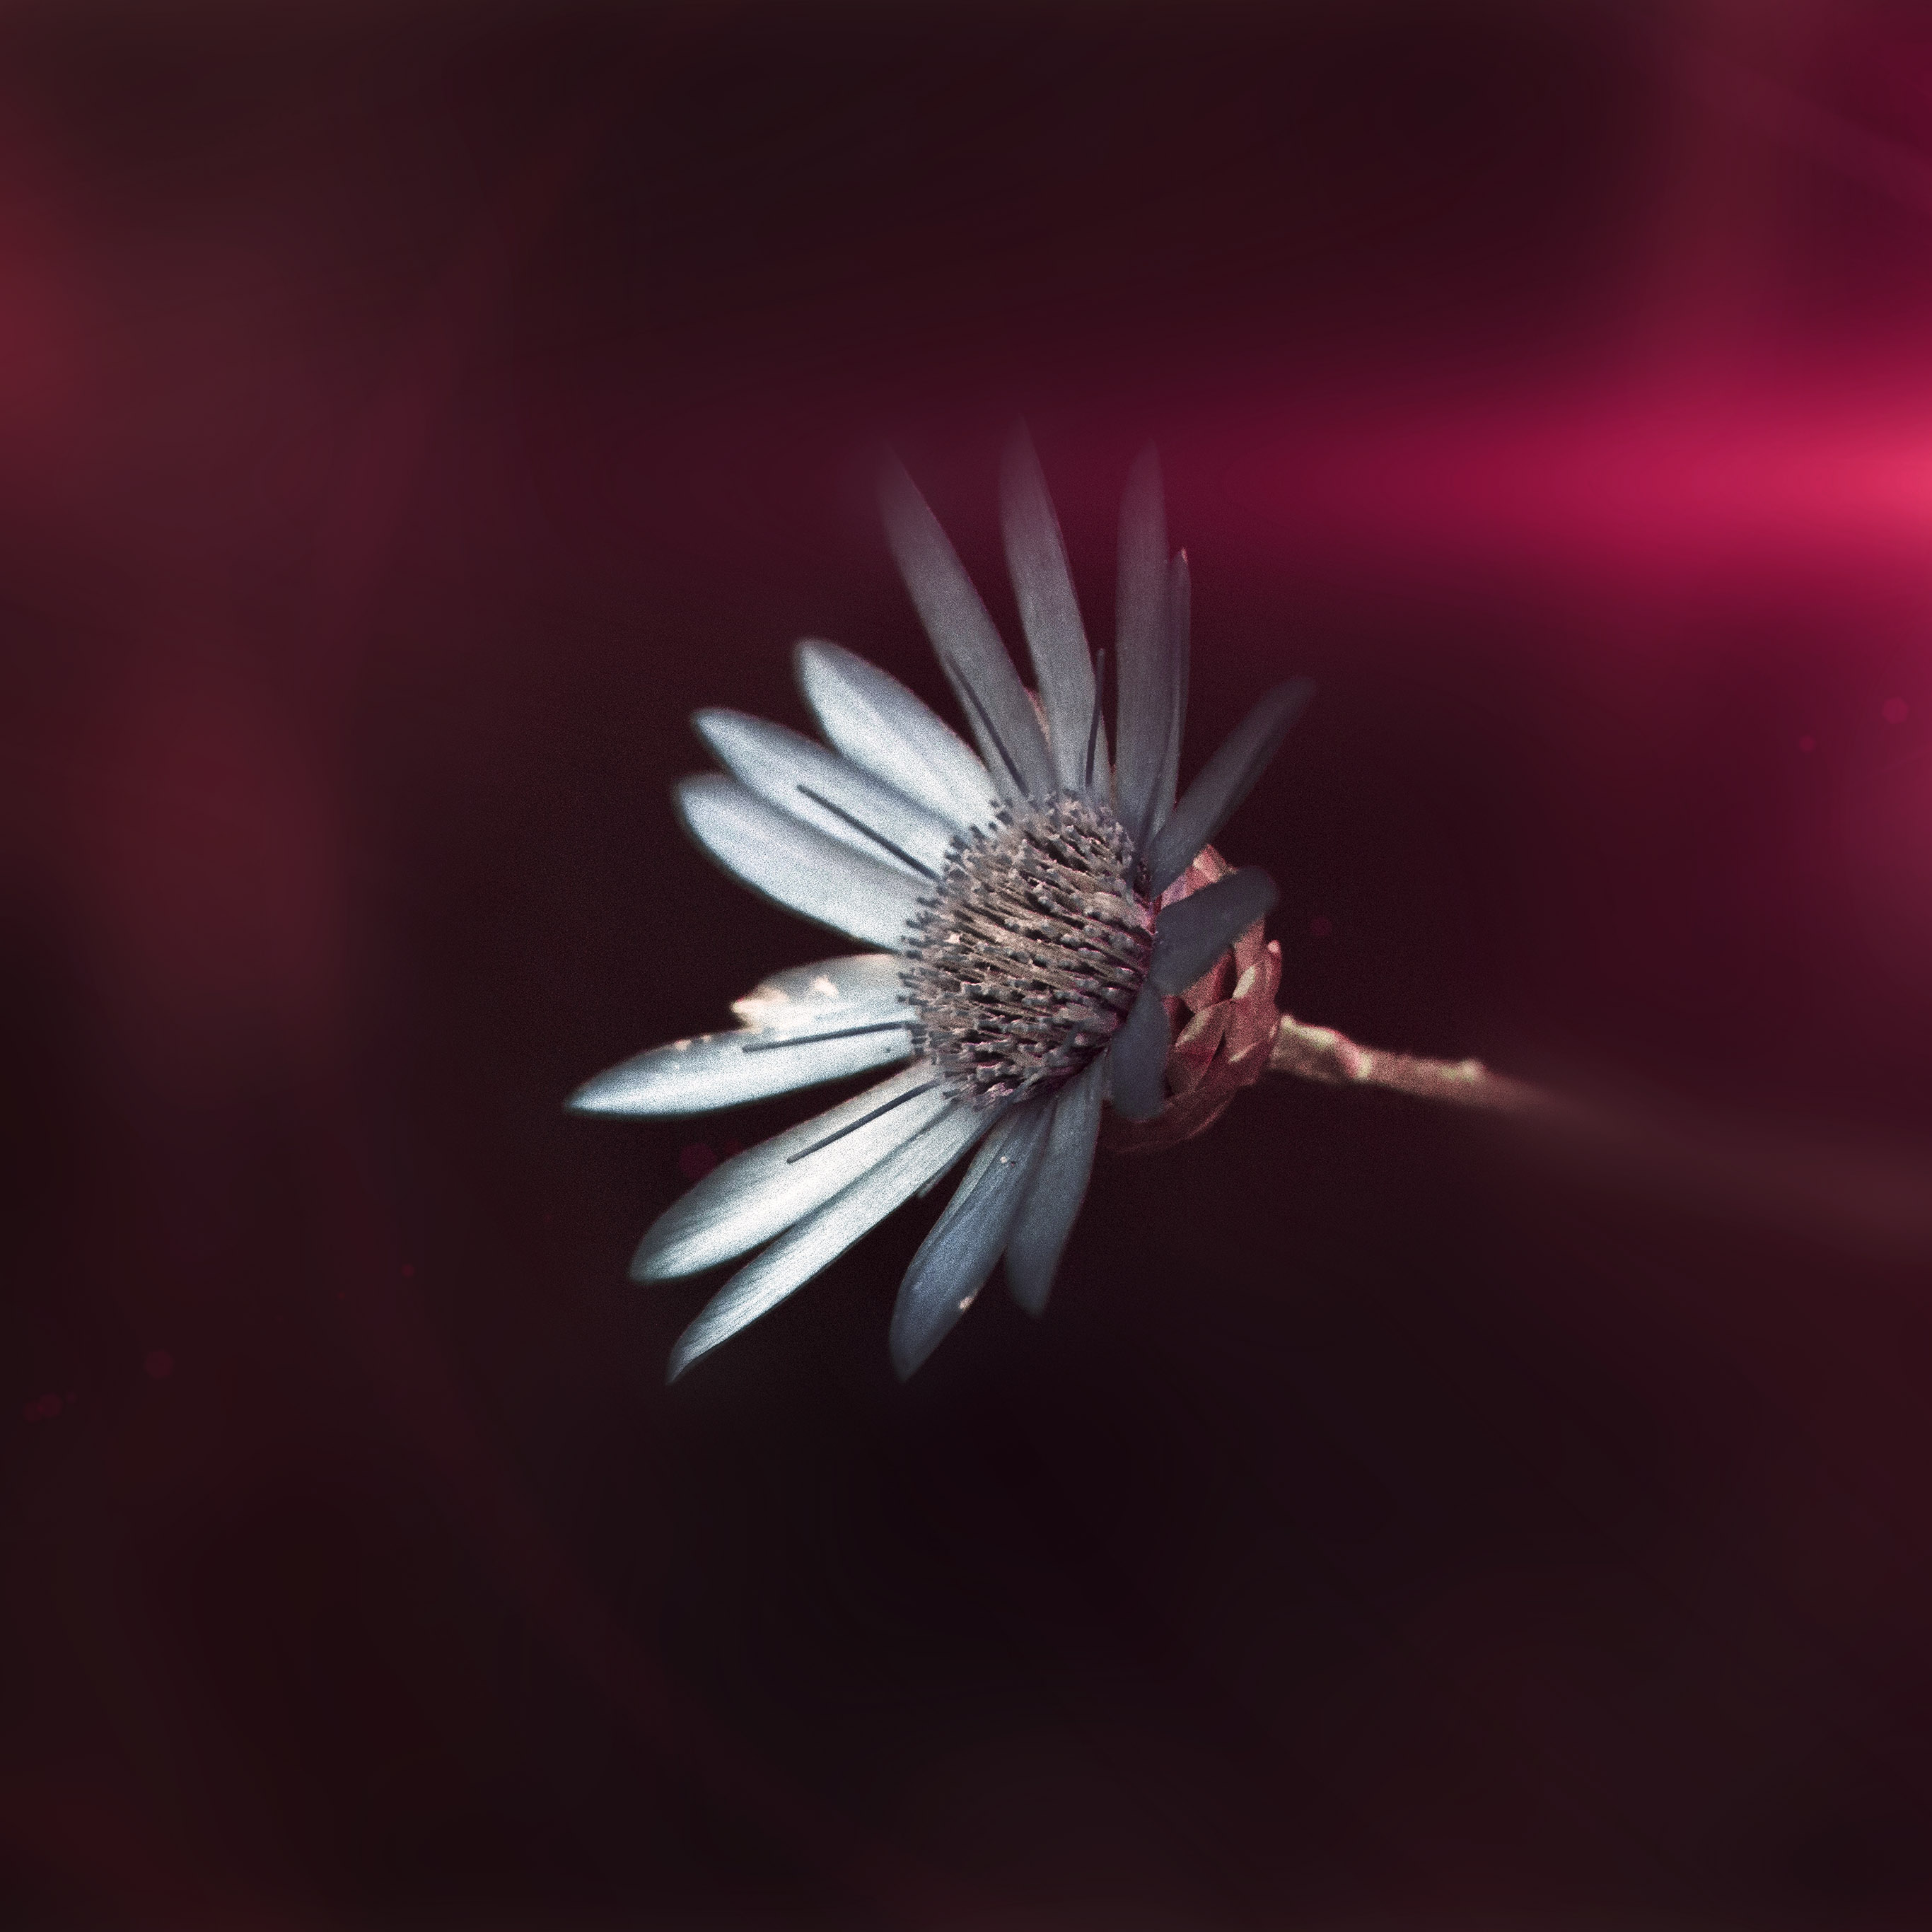 Ni46 Flower Awesome Gorgeous Magnificent Dark Pink Wallpaper